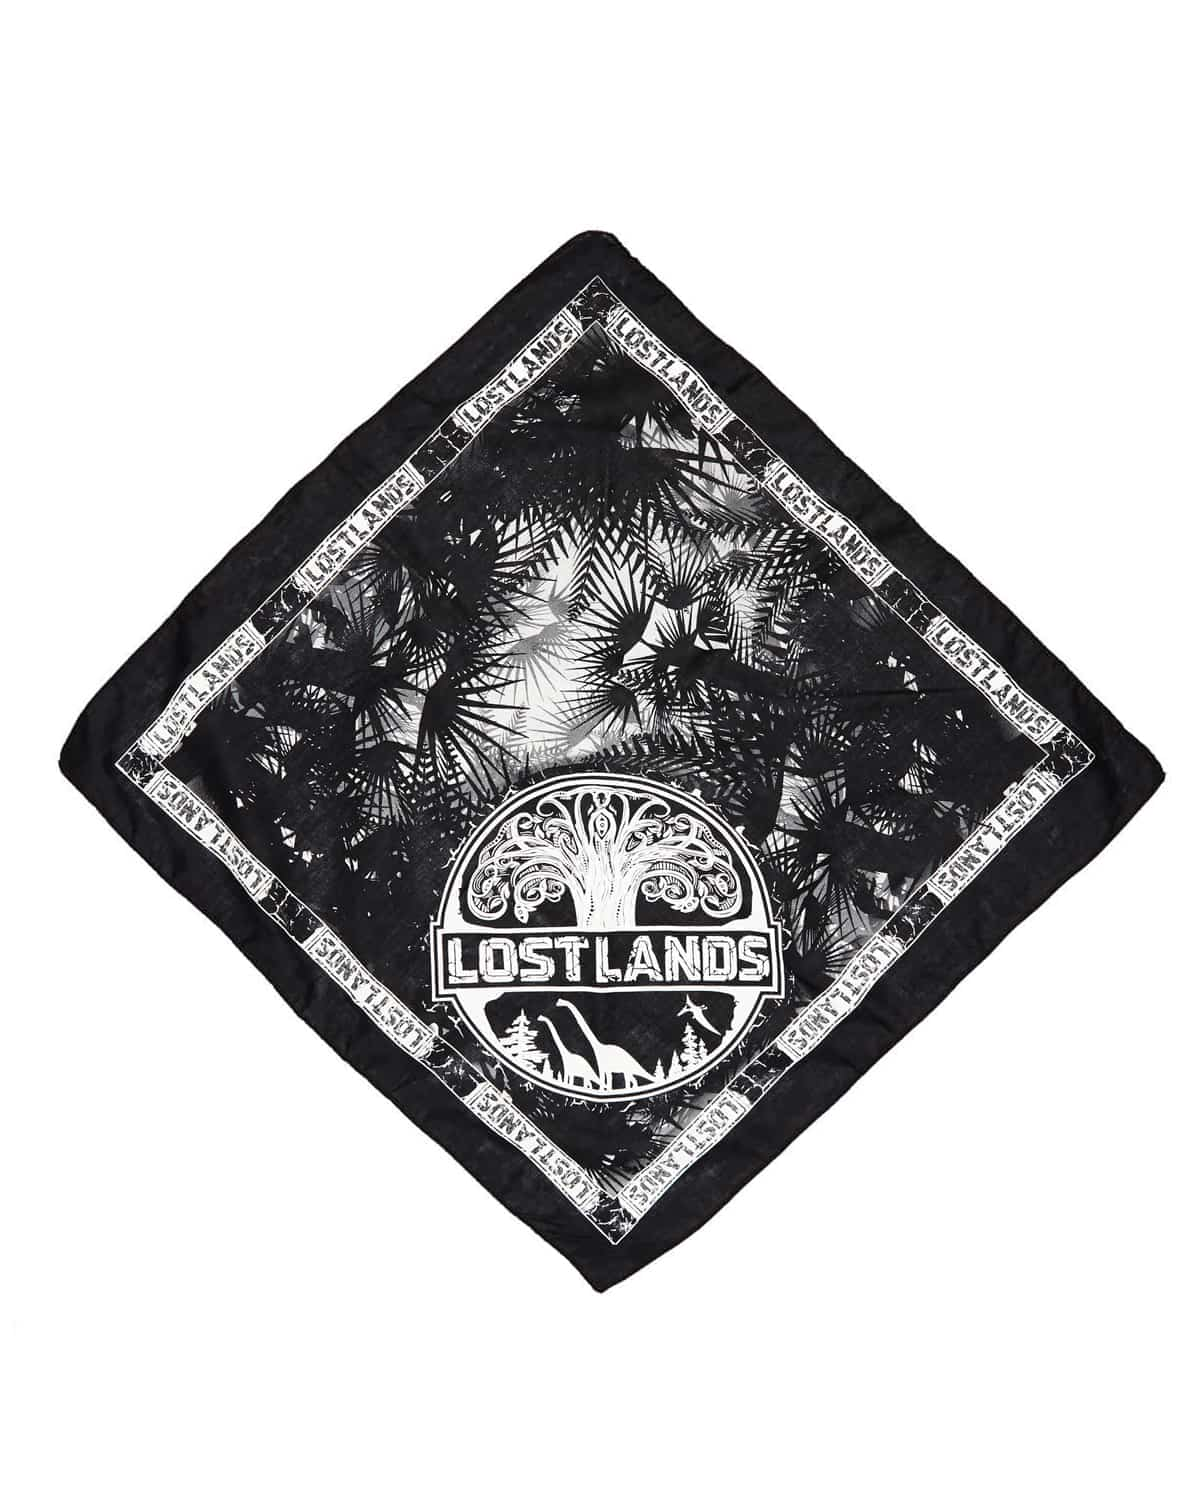 Lost Lands 2018 'Tree of Life' Bandana (White)